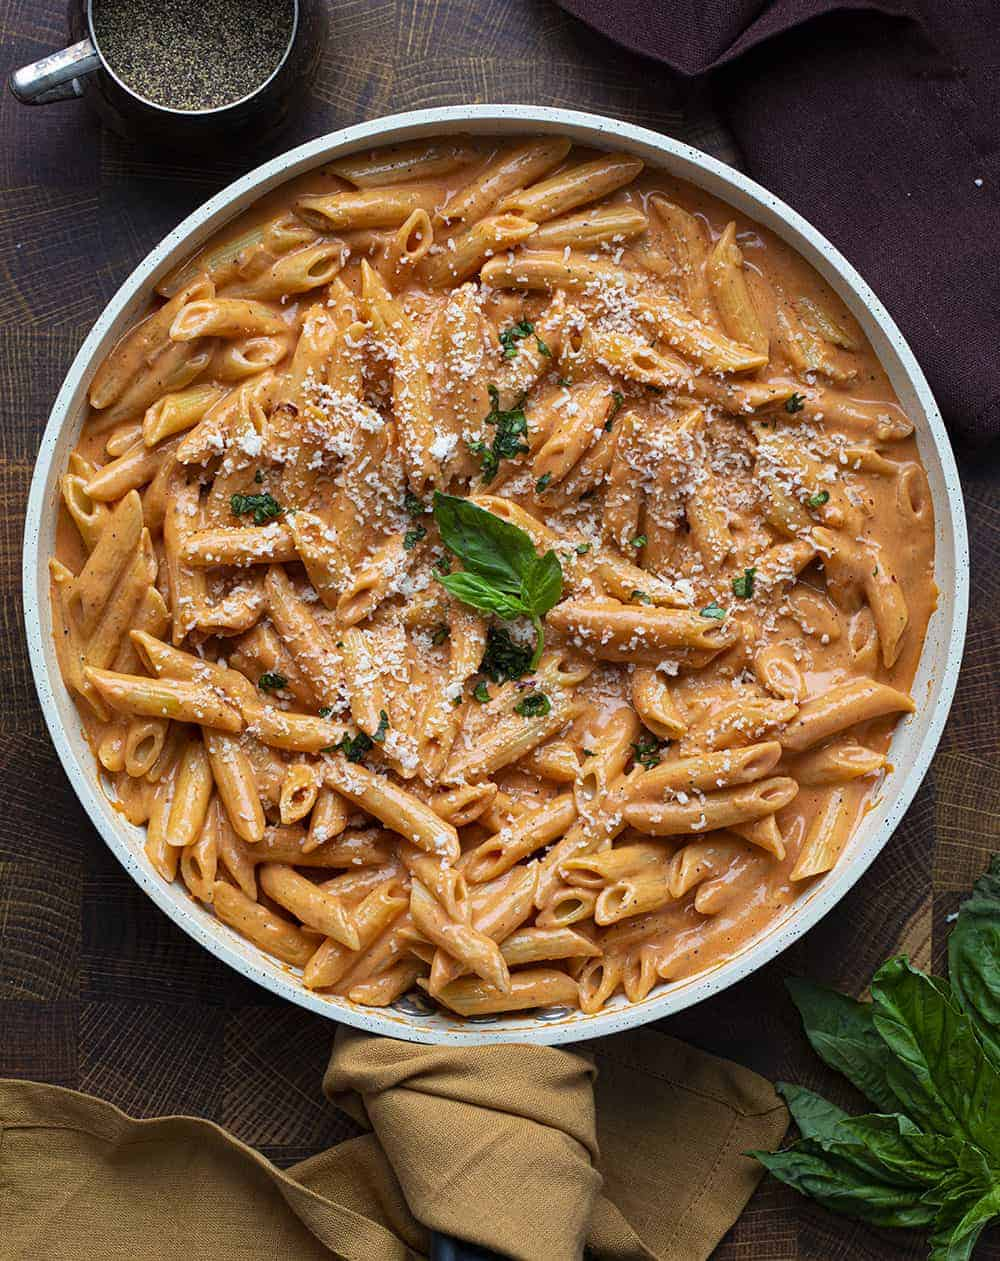 Vodka Sauce with Penne Noodles from Overhead in a Skillet